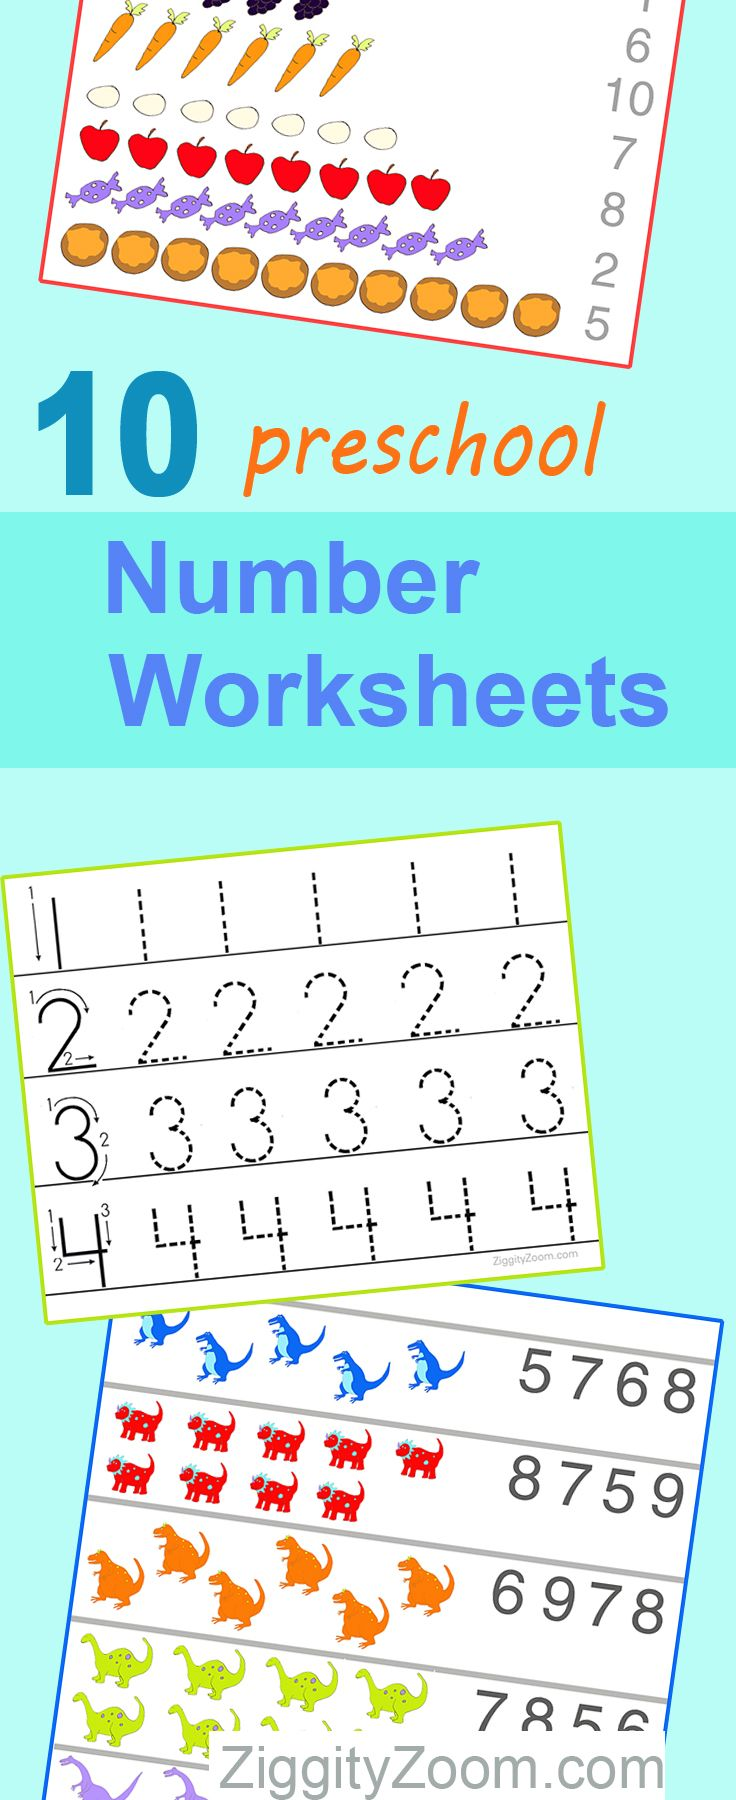 32 best Kids Printables & Worksheets images on Pinterest ...